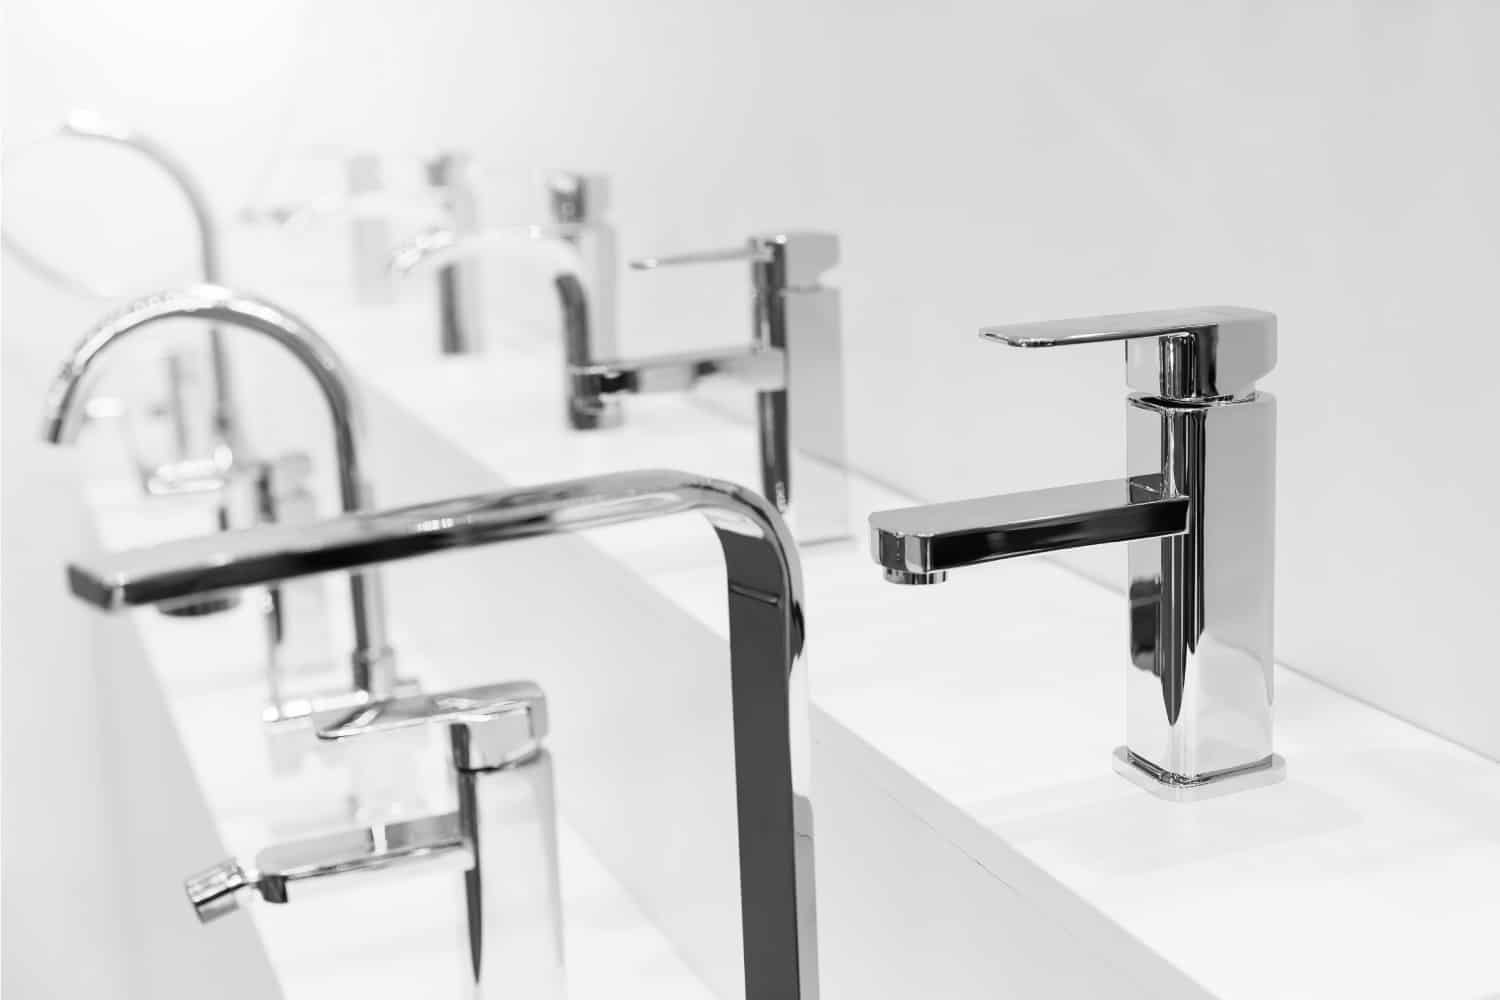 Store stand with assorted bathroom faucets